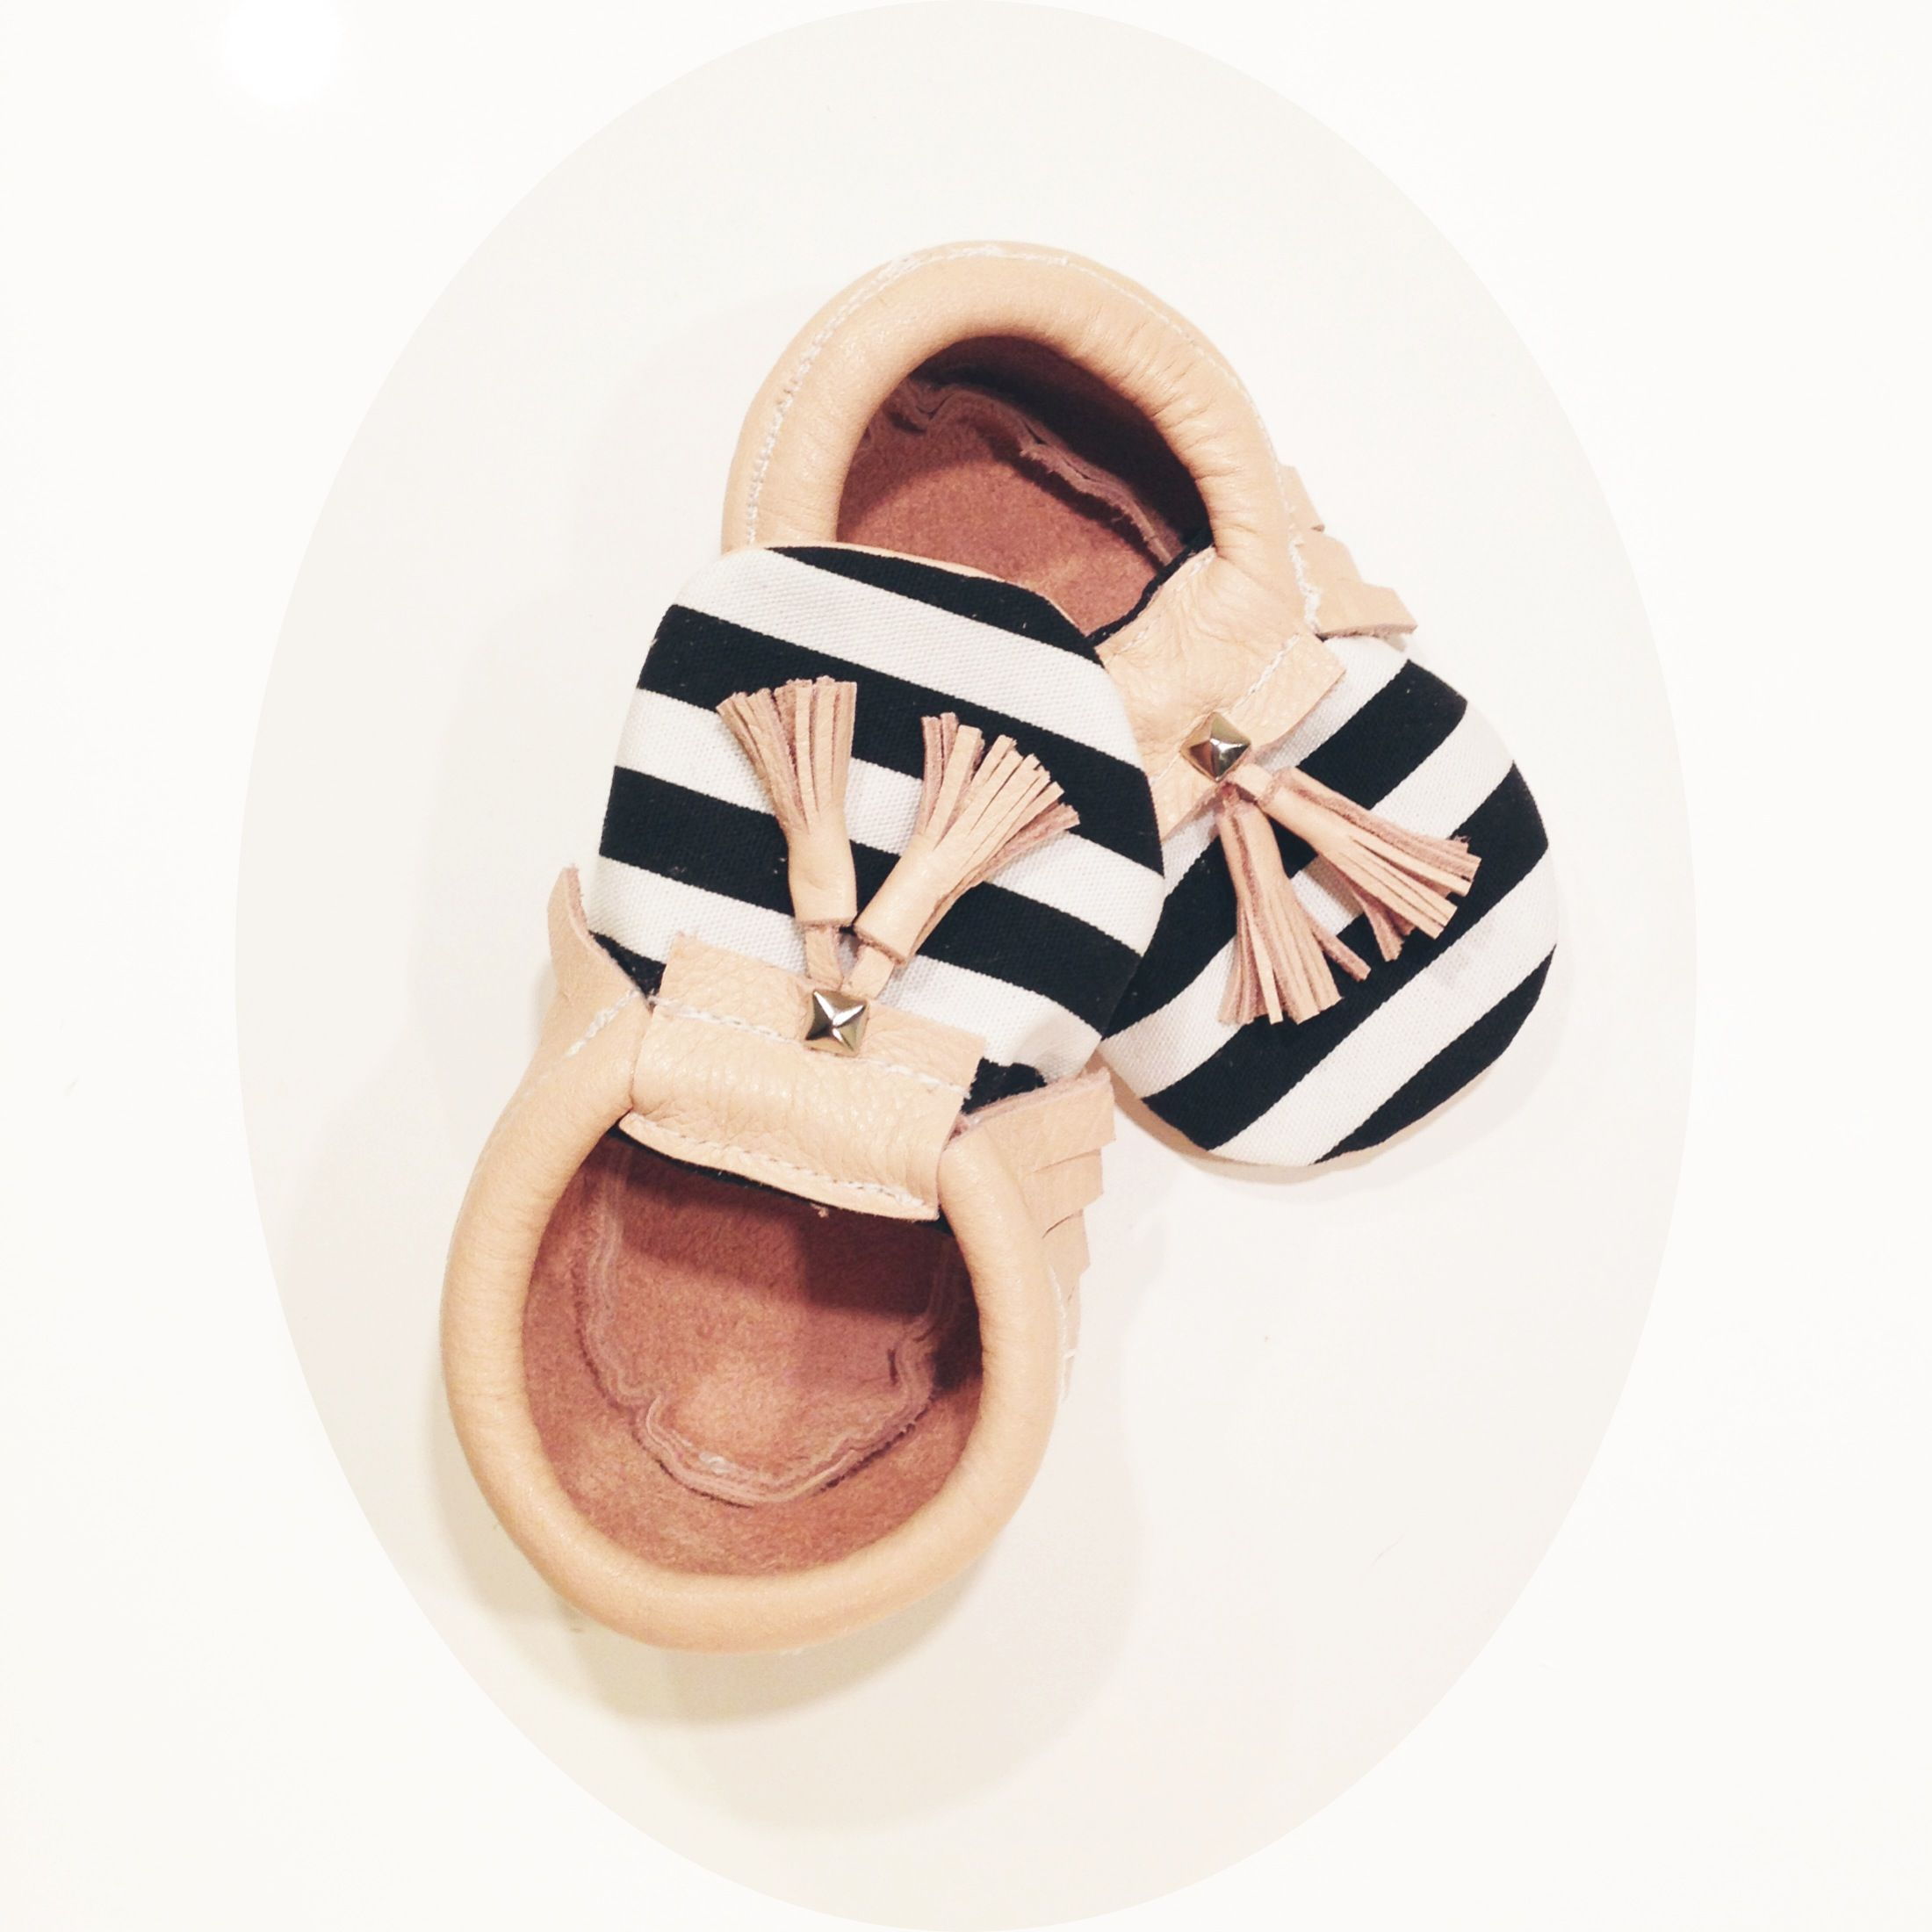 Crew & Lu Striped baby moccasins For kids Pinterest